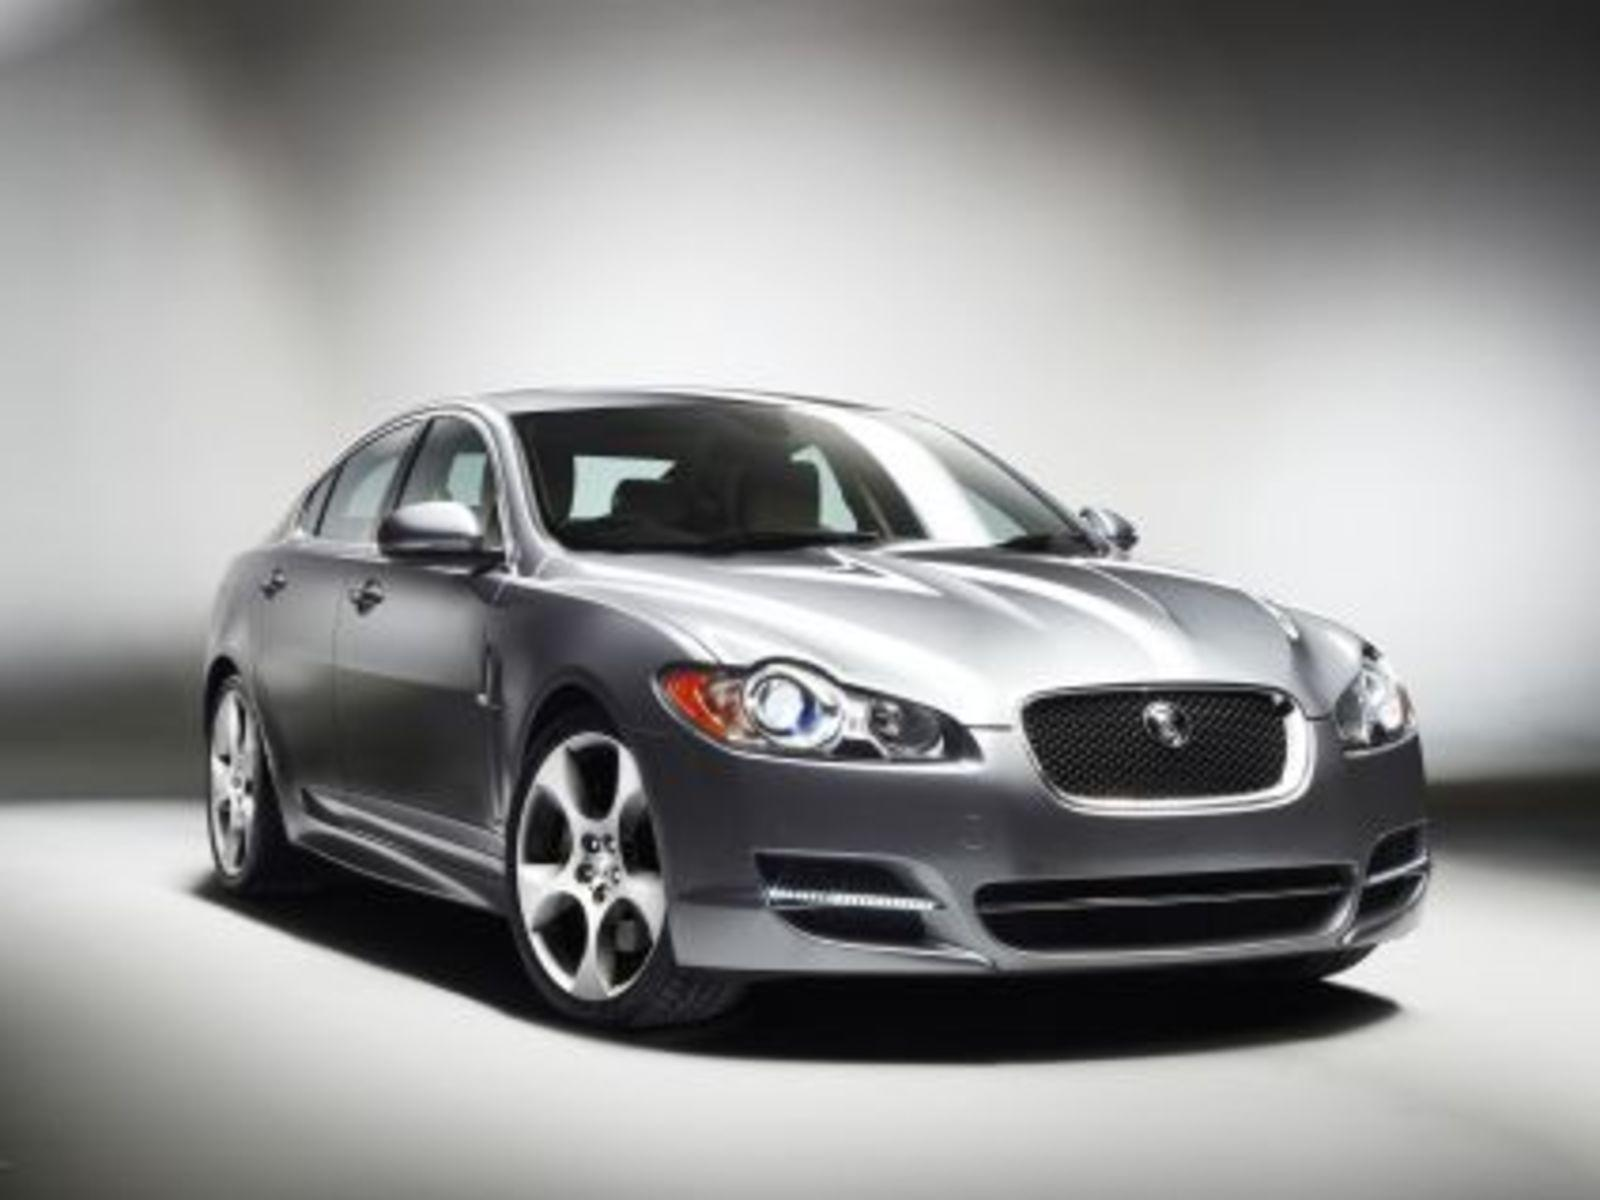 Jaguar Cars News Jaguar Land Rover To Produce Cars In China News Top Speed